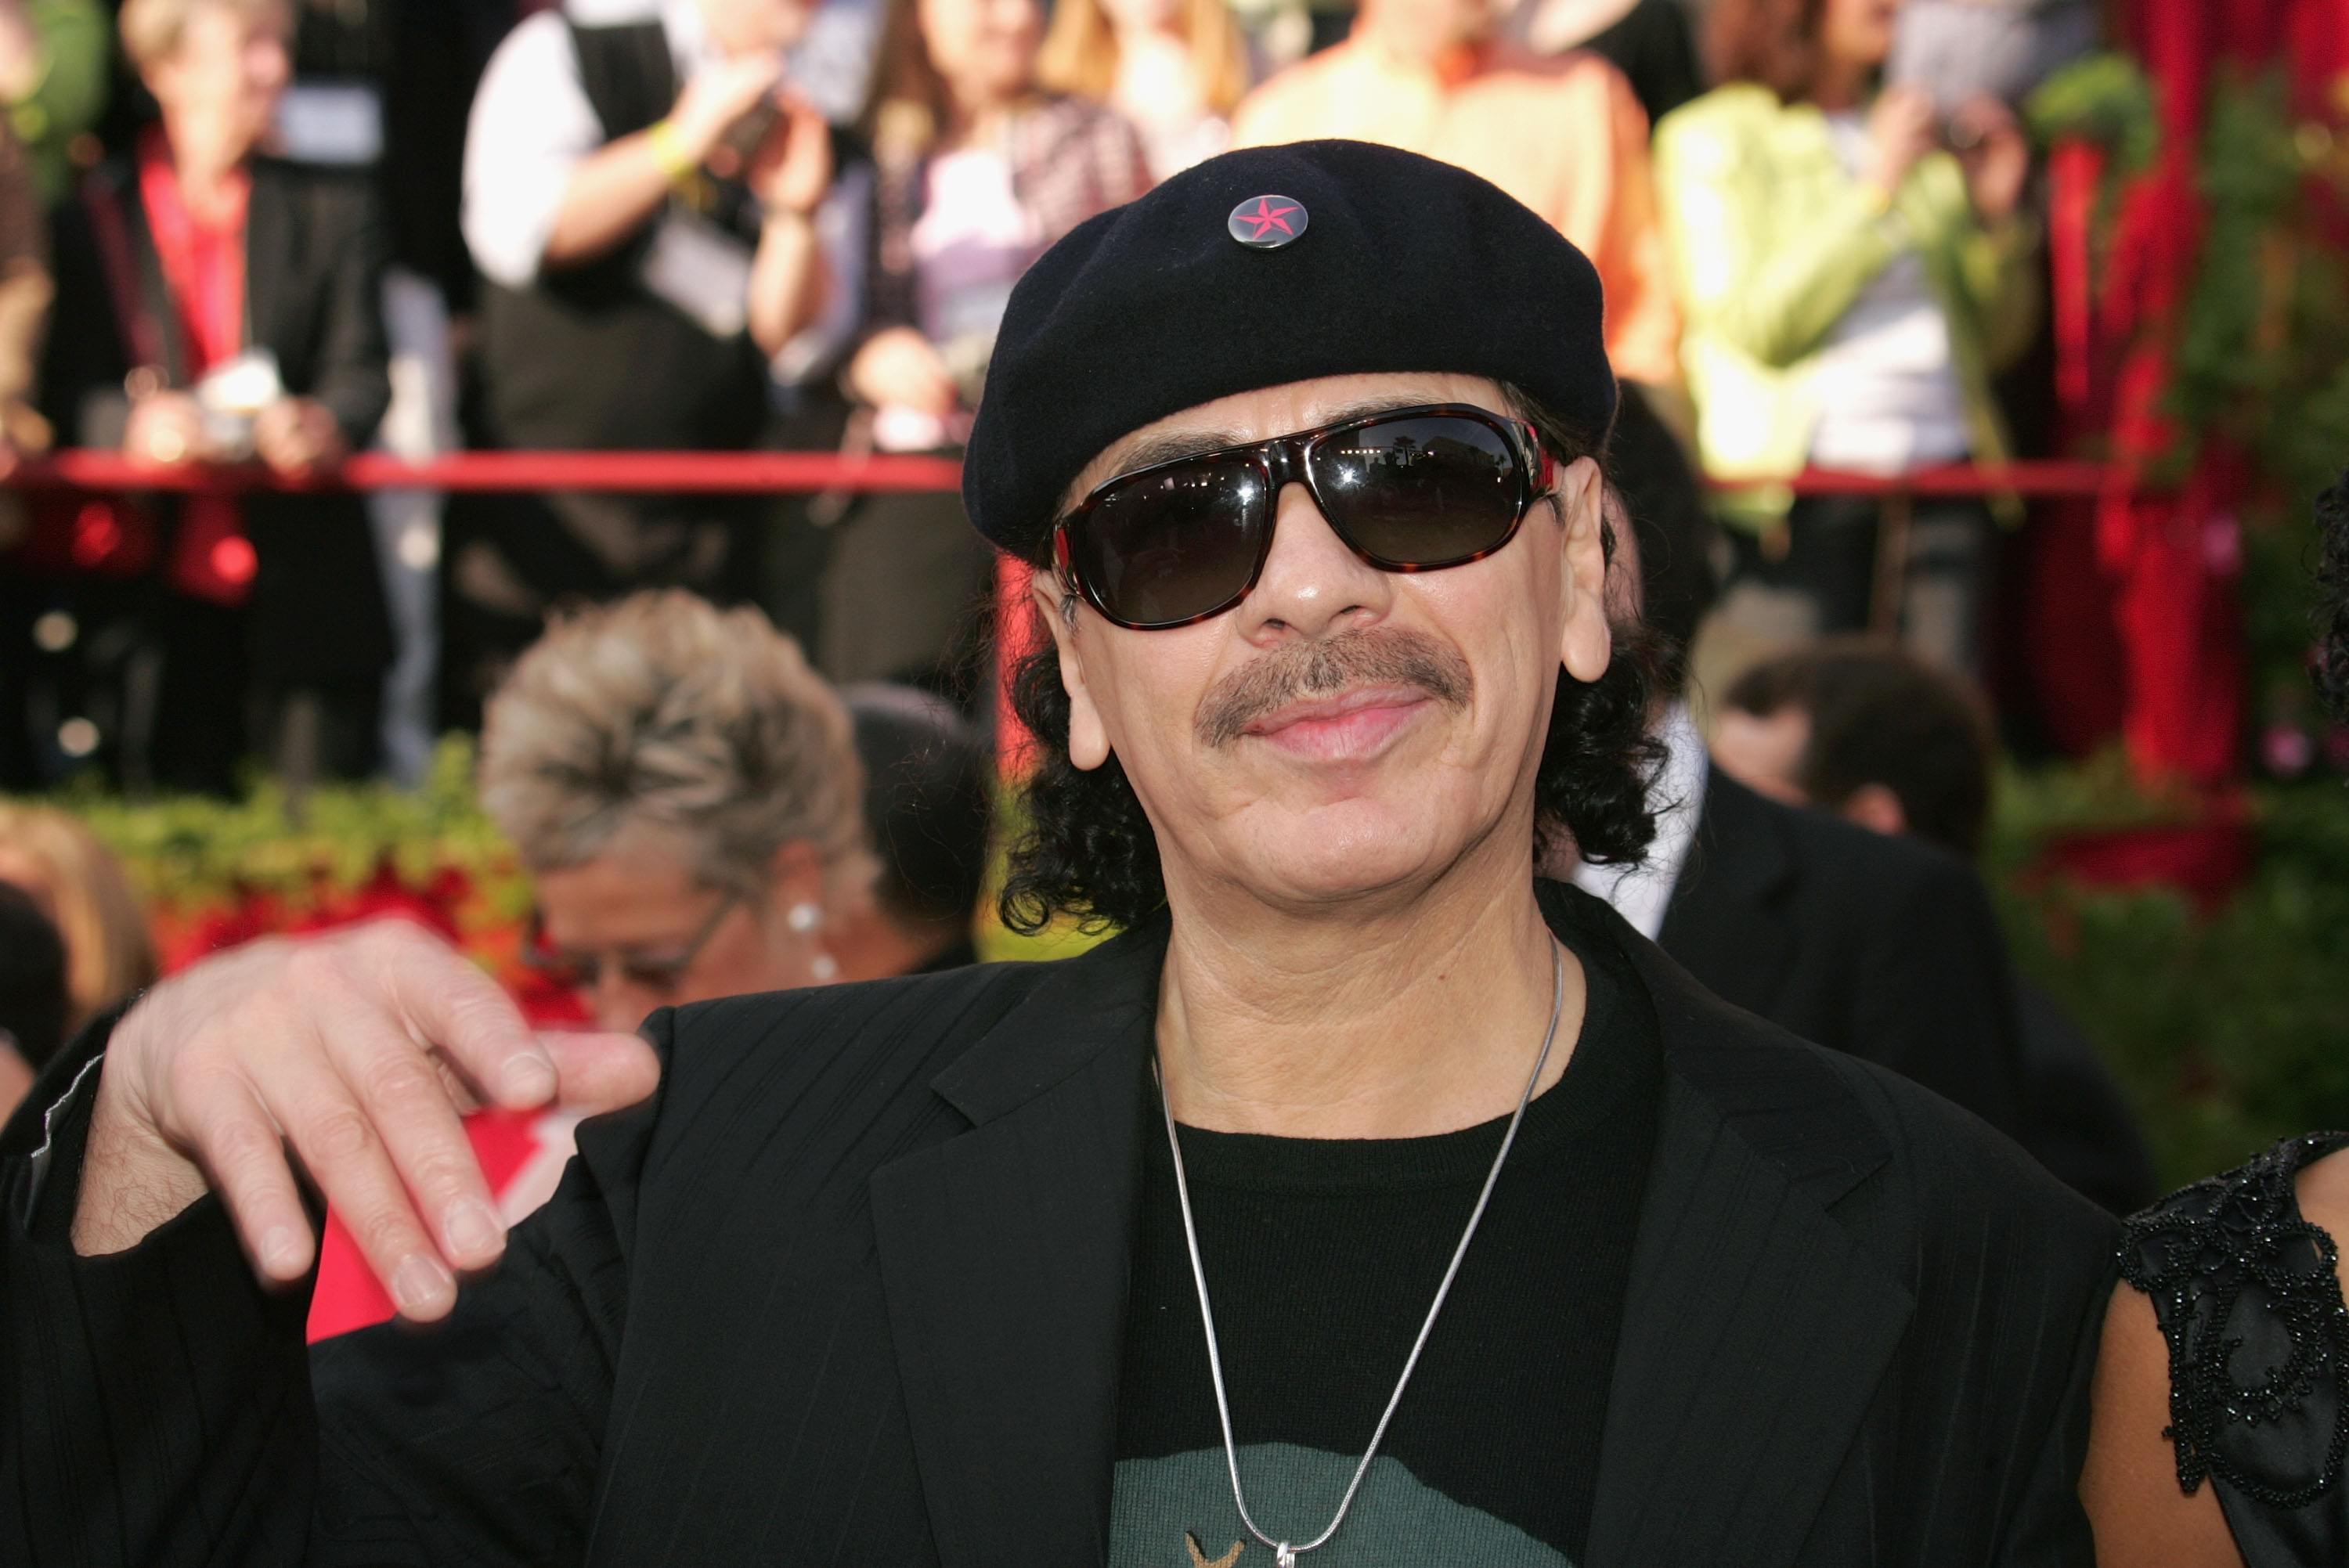 Santana lands top 5 spot on 'Billboard' 200 with Africa Speaks